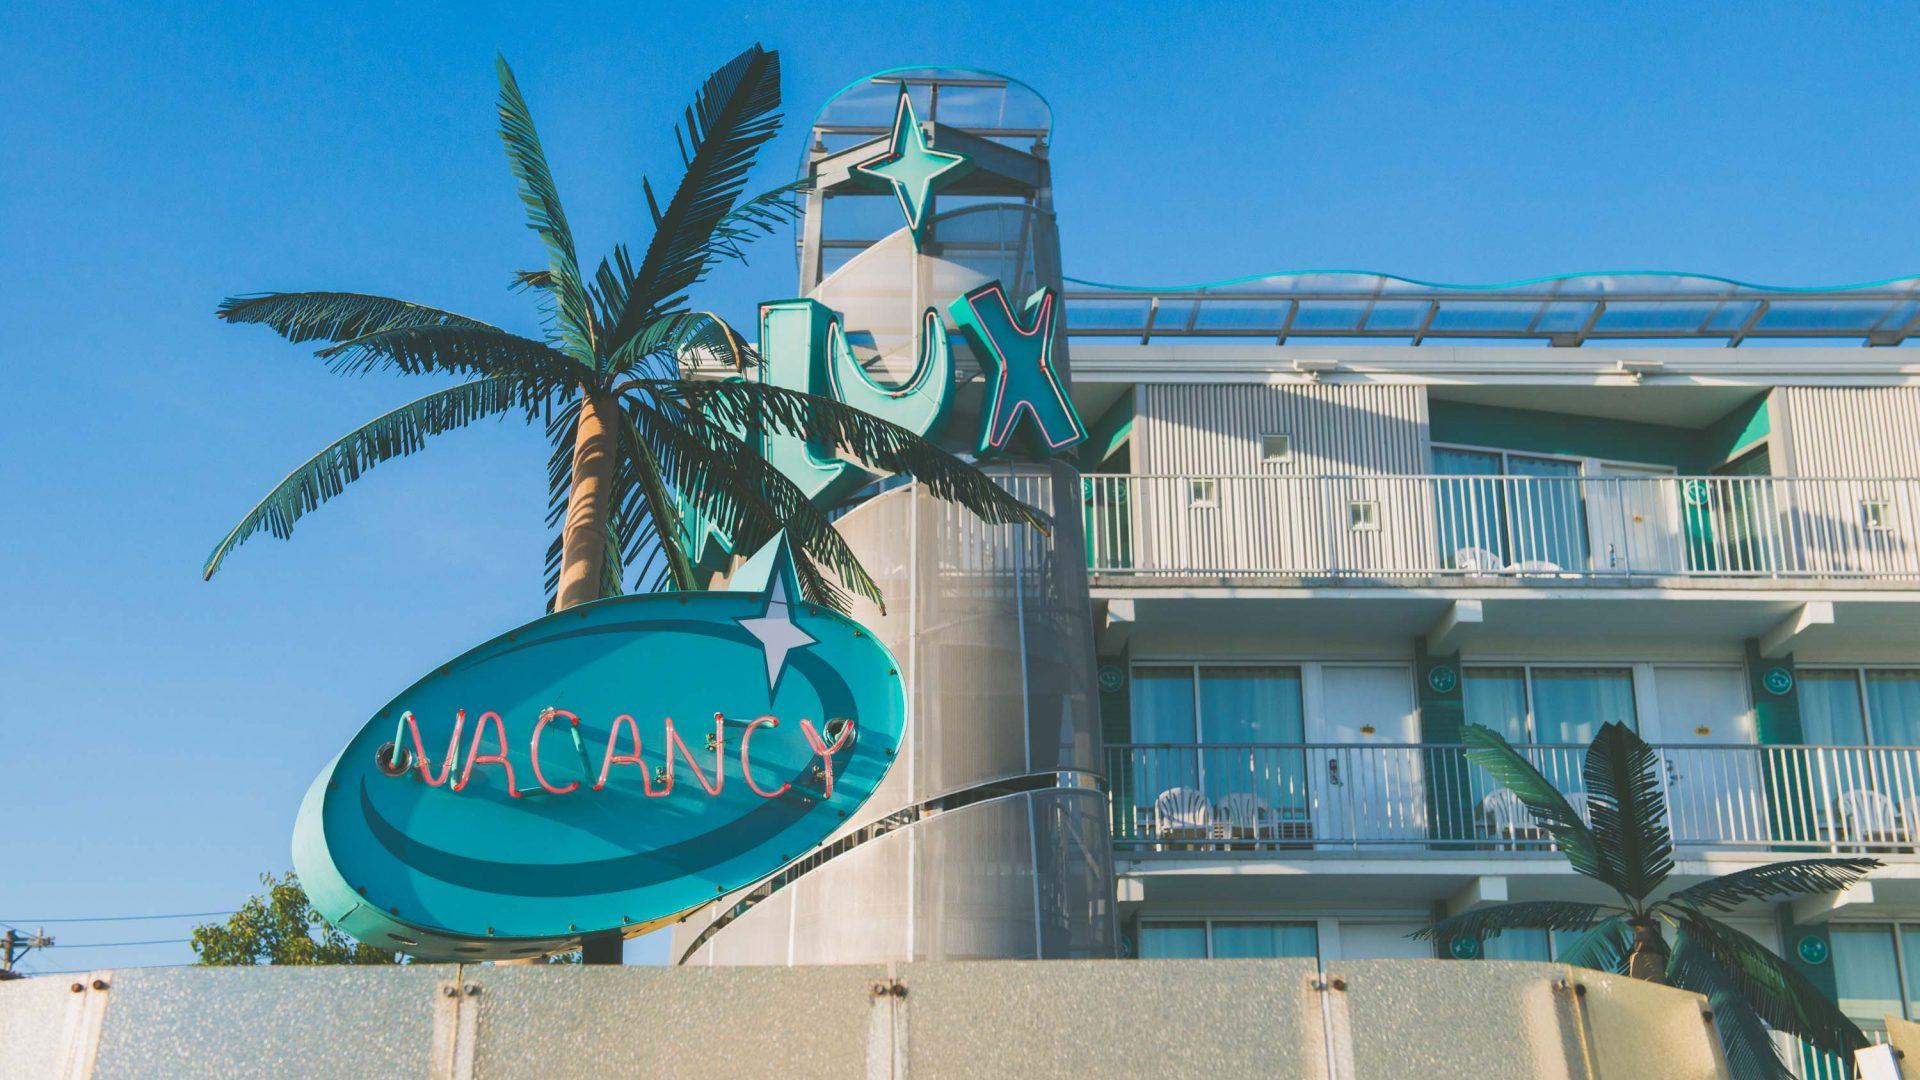 Fake palm trees are a staple for many of the Wildwood motels.